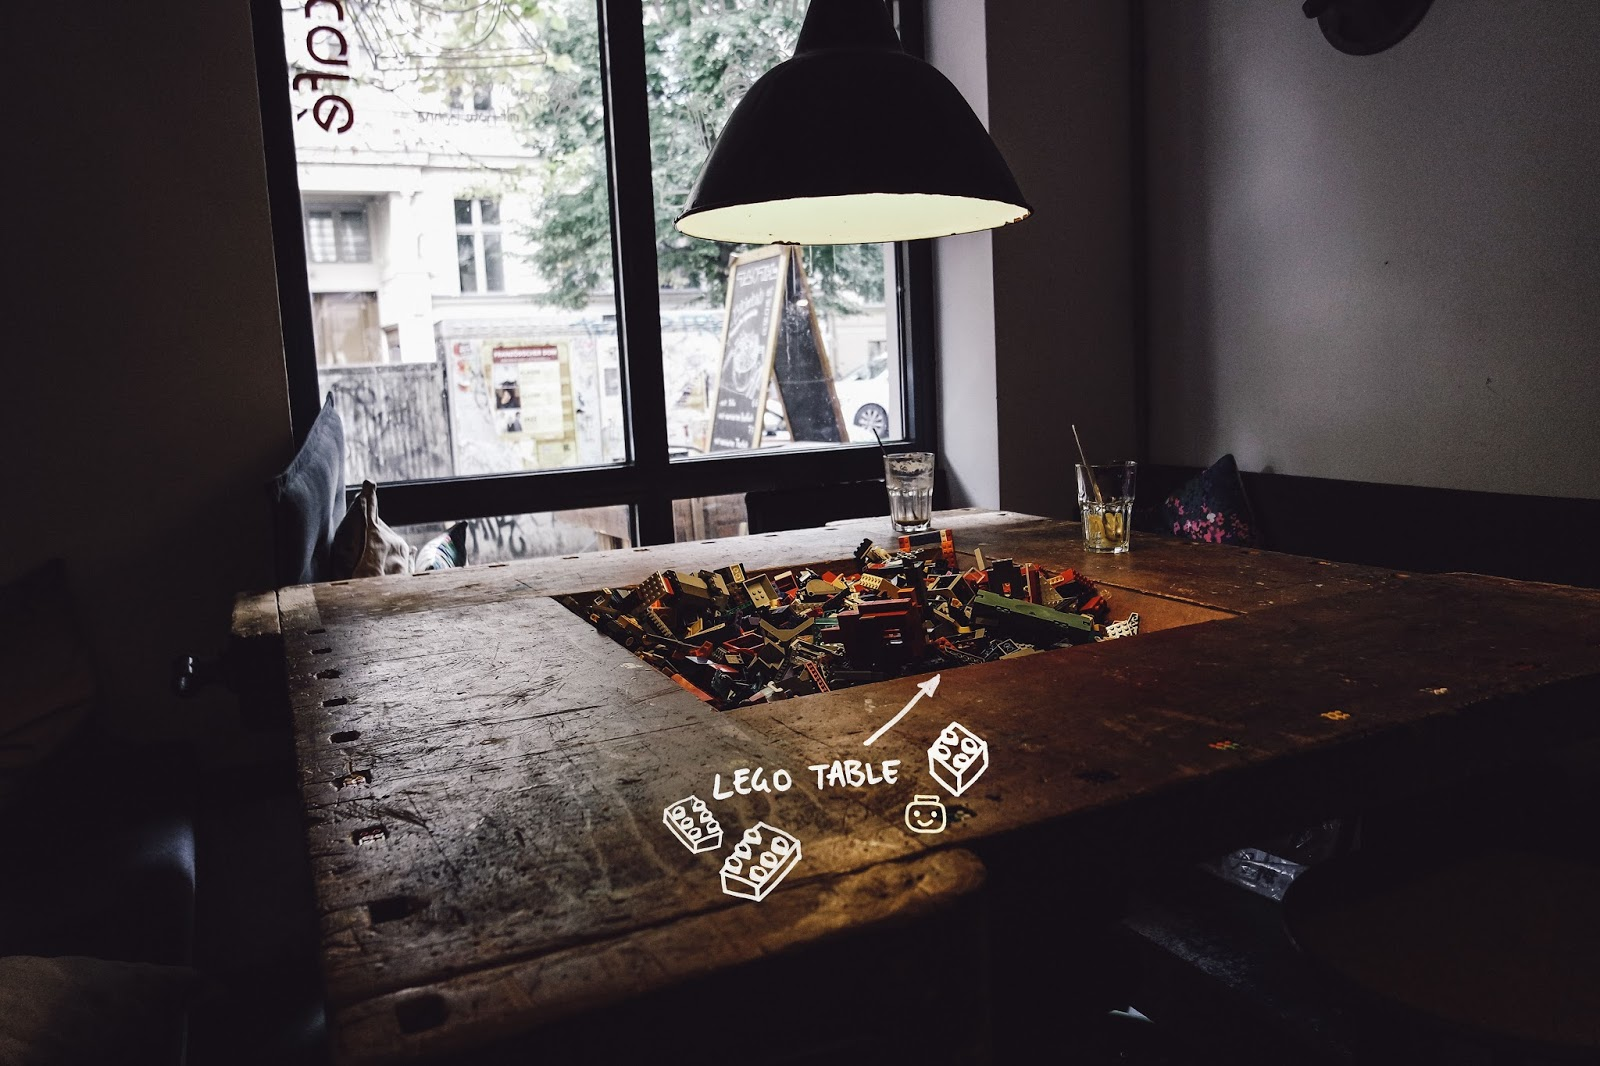 cafe gong gan lego table berlin food 2